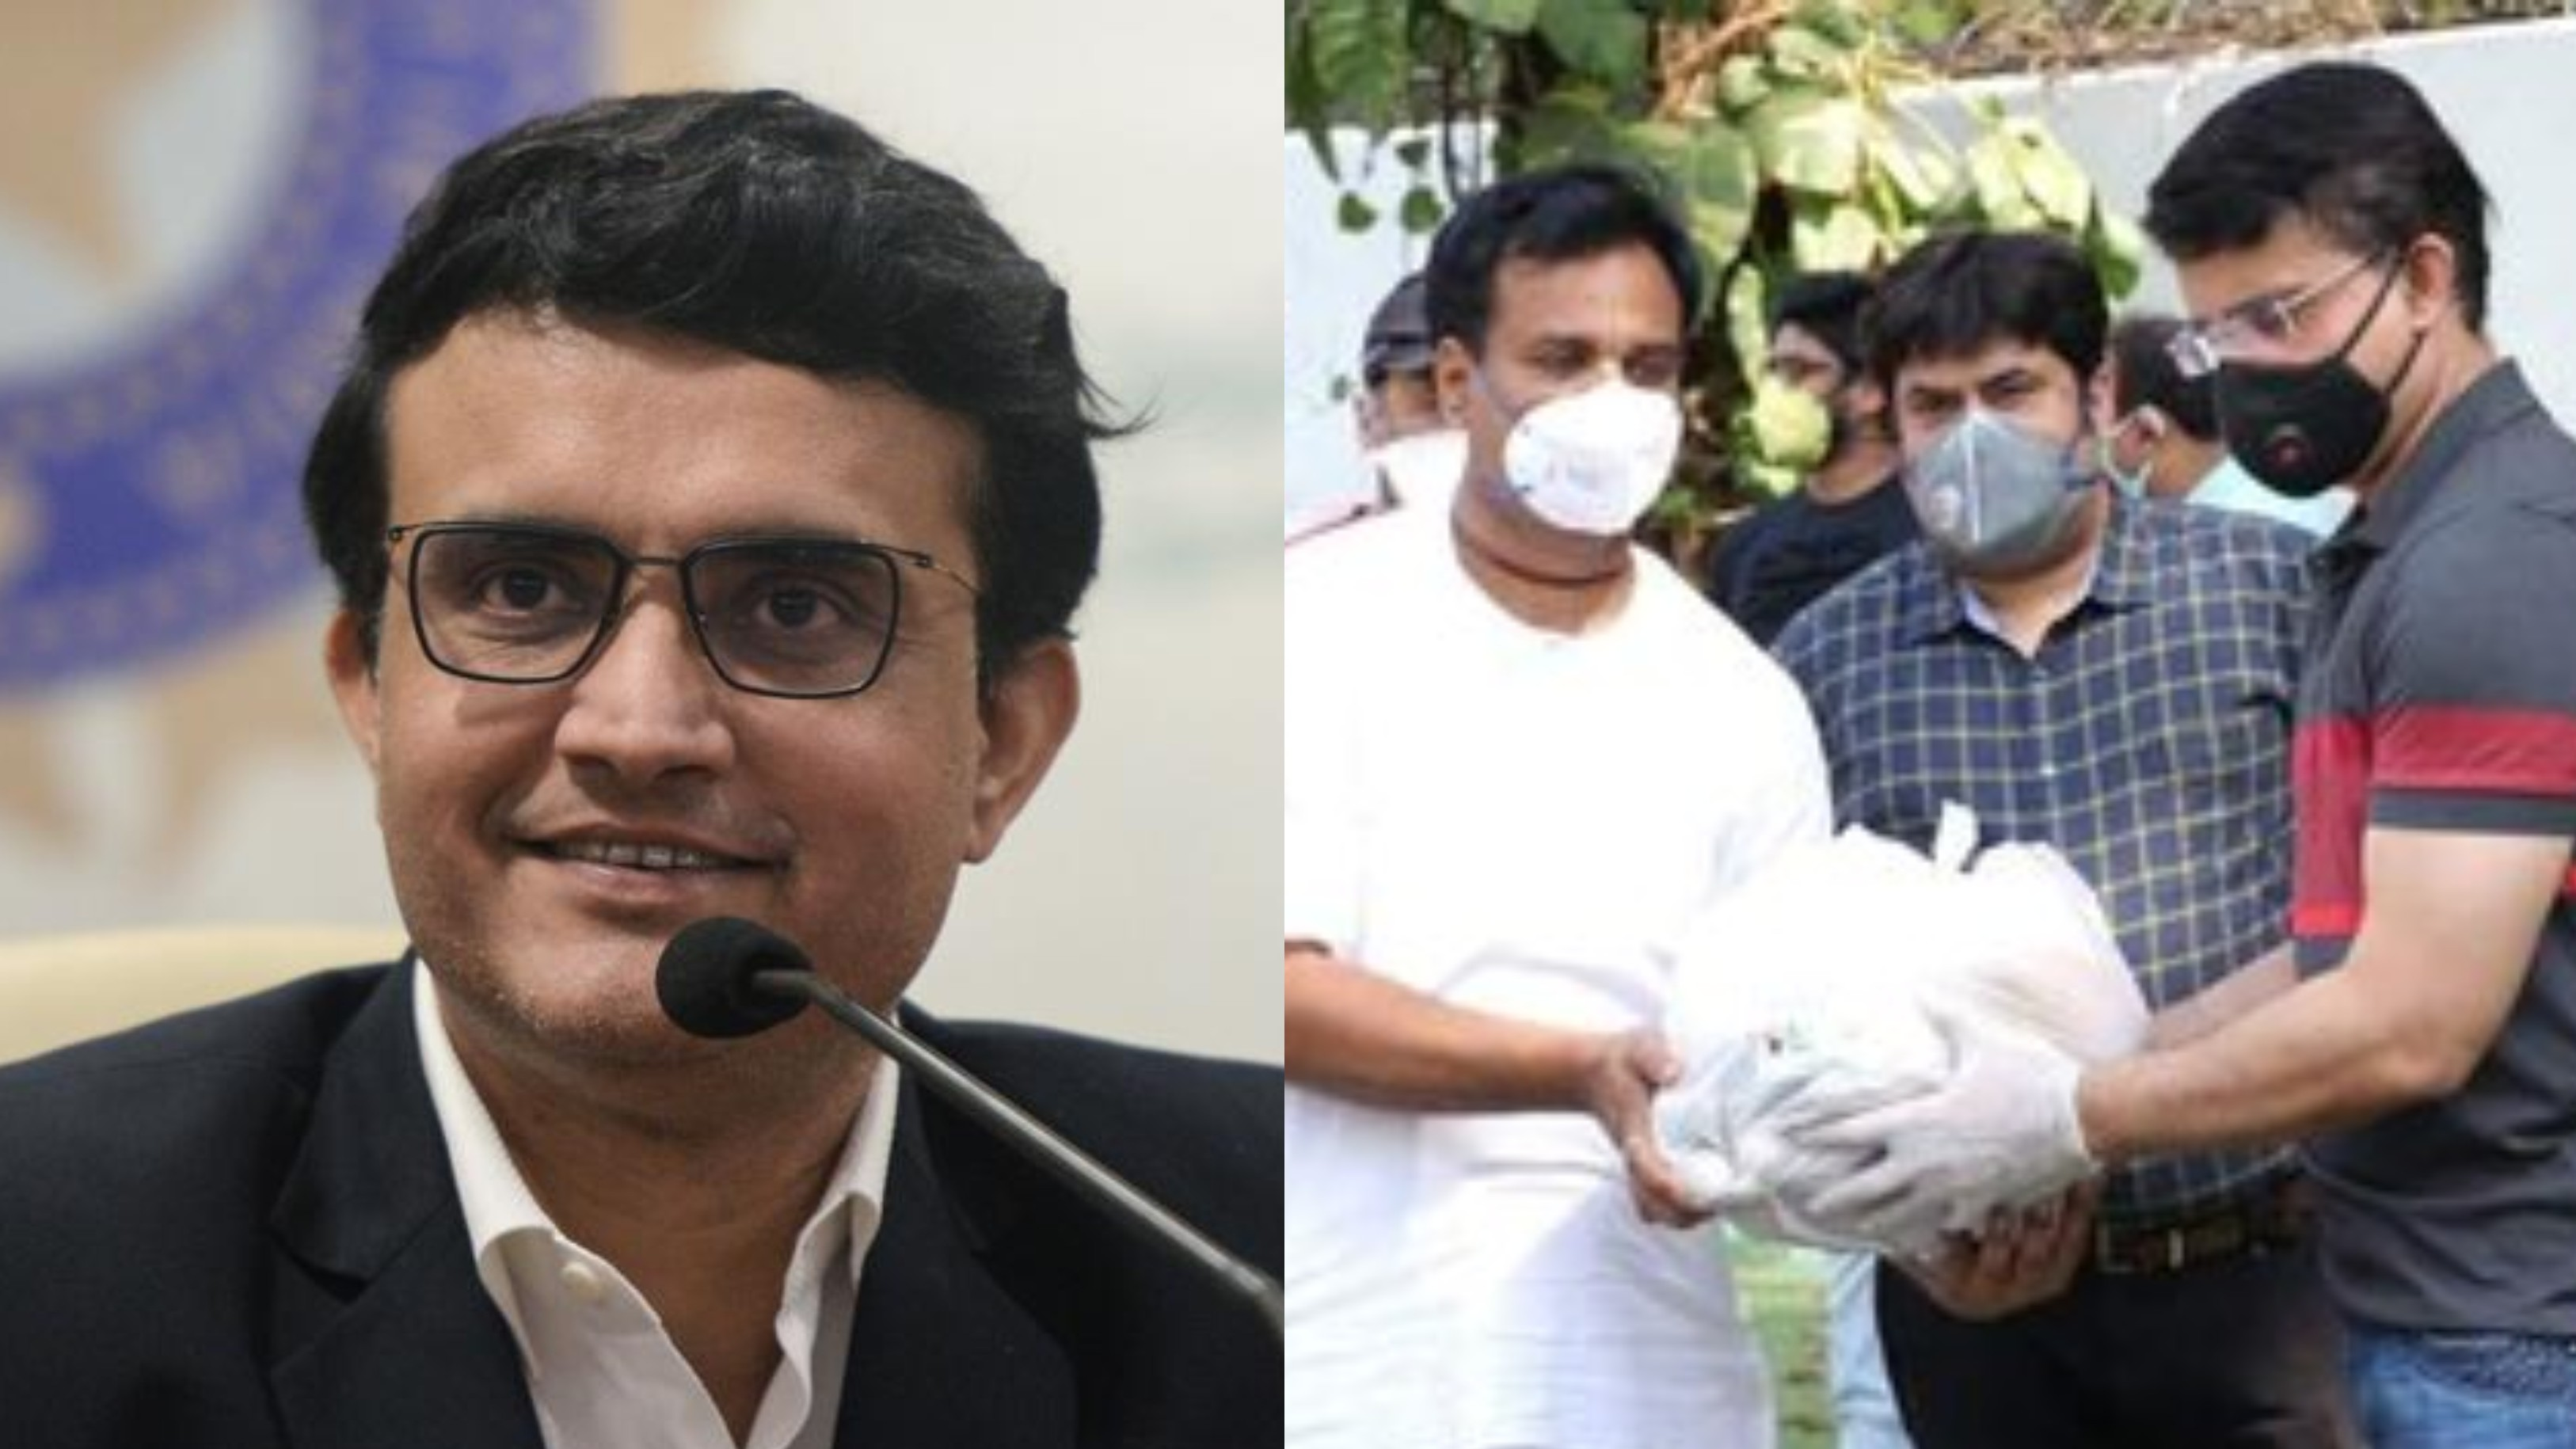 Sourav Ganguly collaborates with ISKCON to help needy amid COVID-19 lockdown